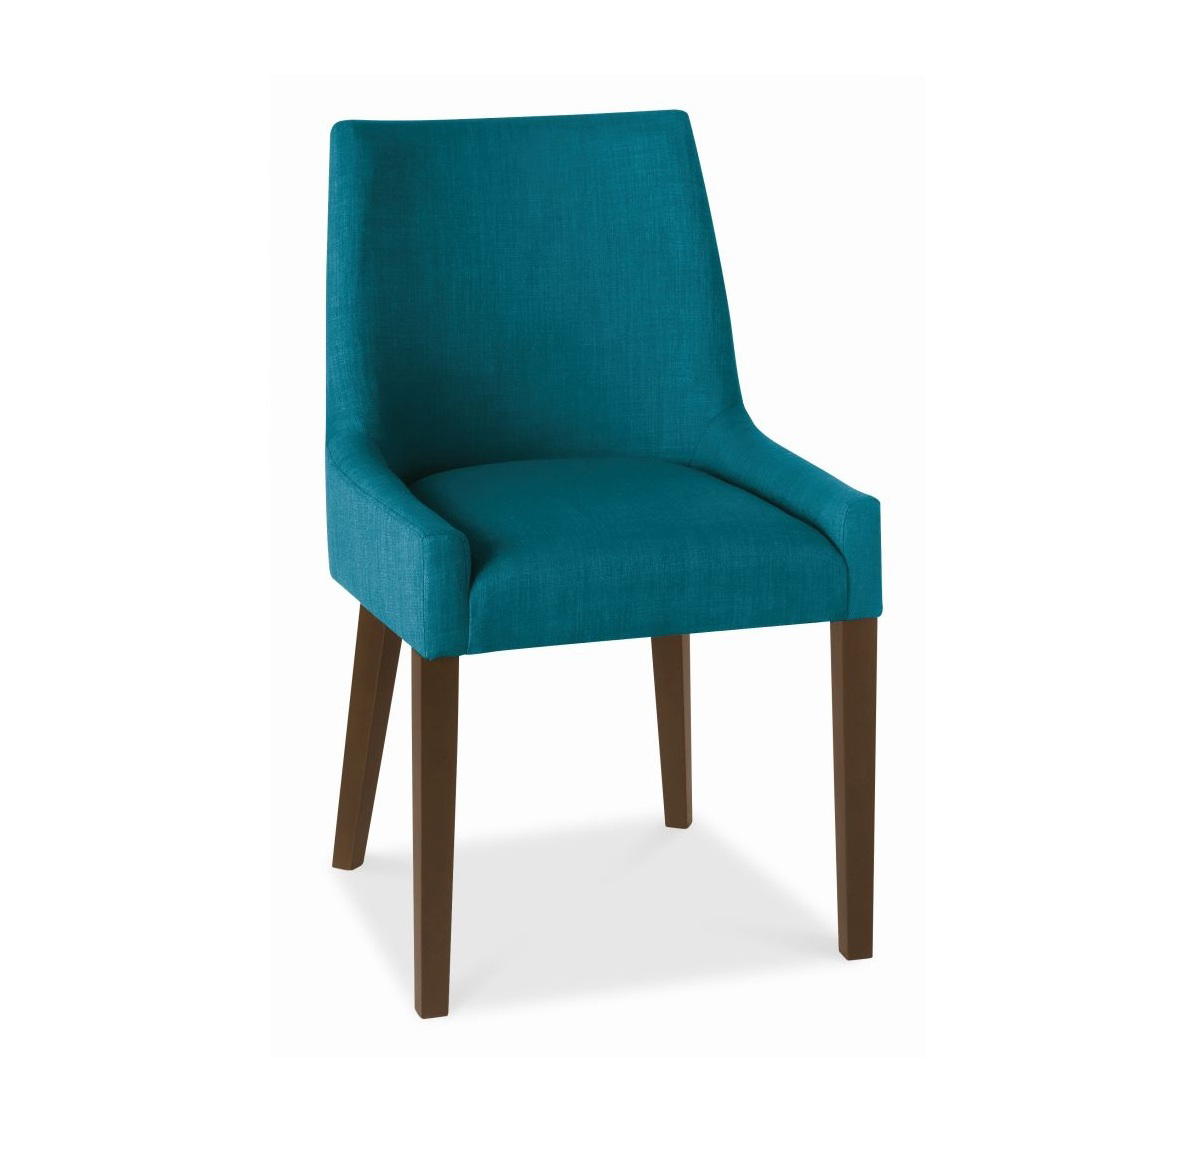 ALEX TEAL UPHOLSTERED DINING CHAIR WITH WALNUT LEGS ...